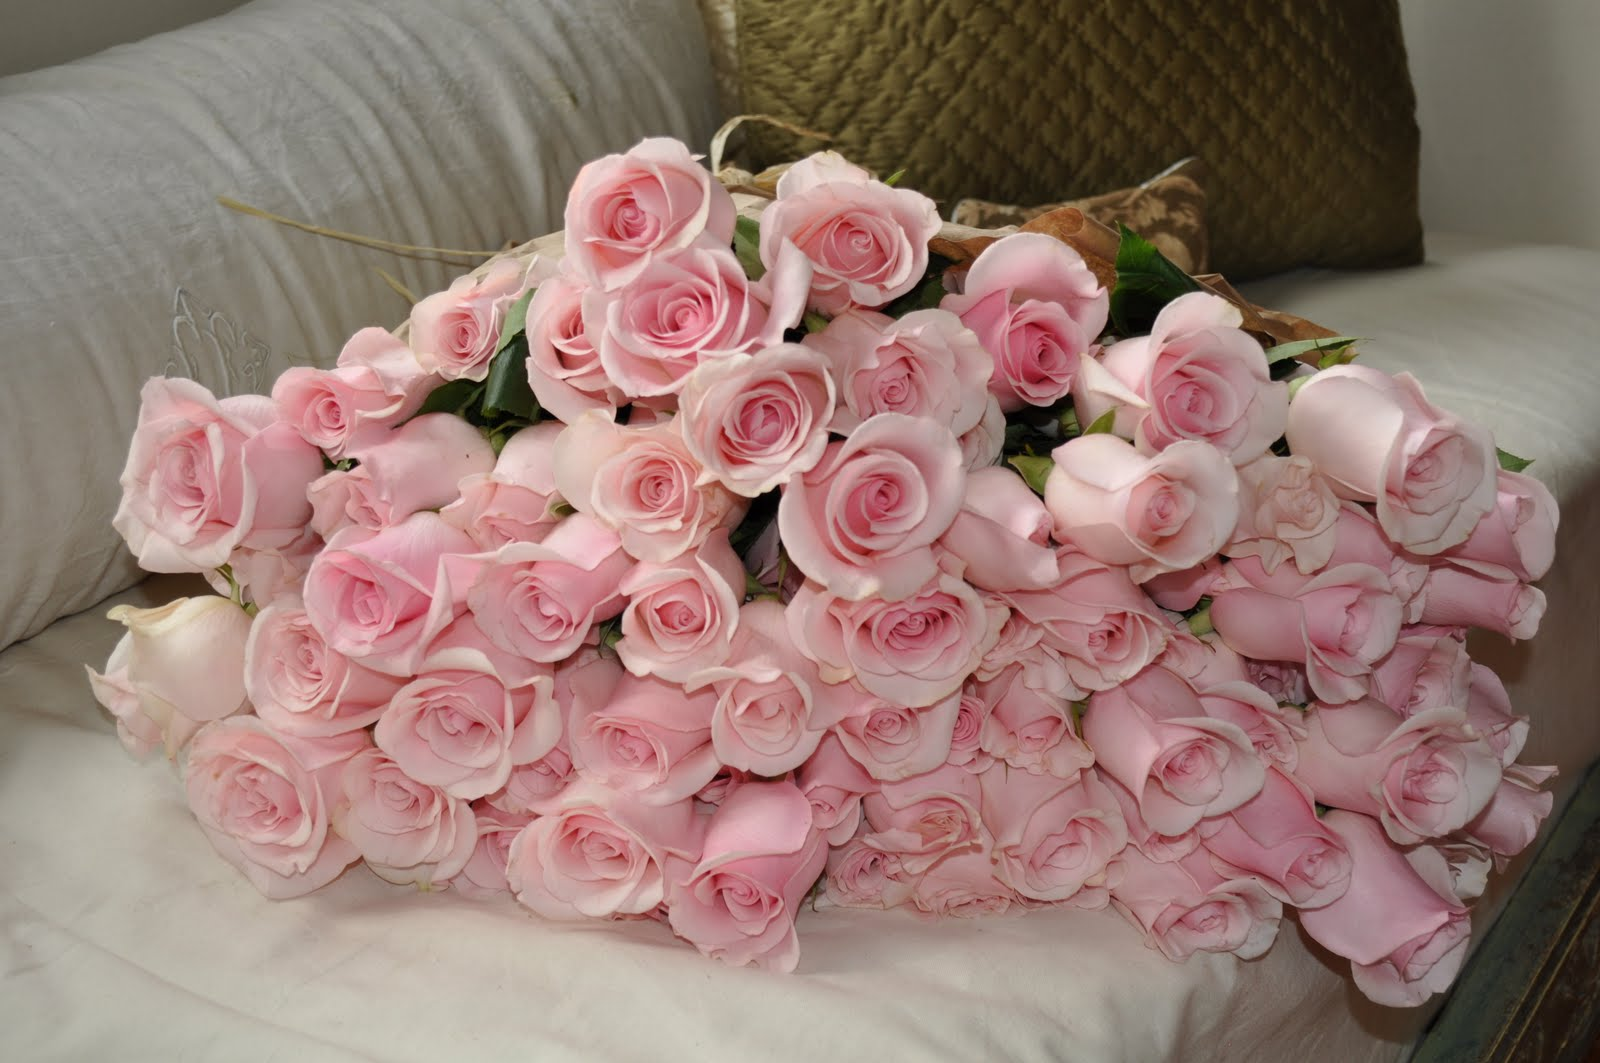 Charlottes Brocante Have You Ever Found 5 Dozen Pink Roses Left On